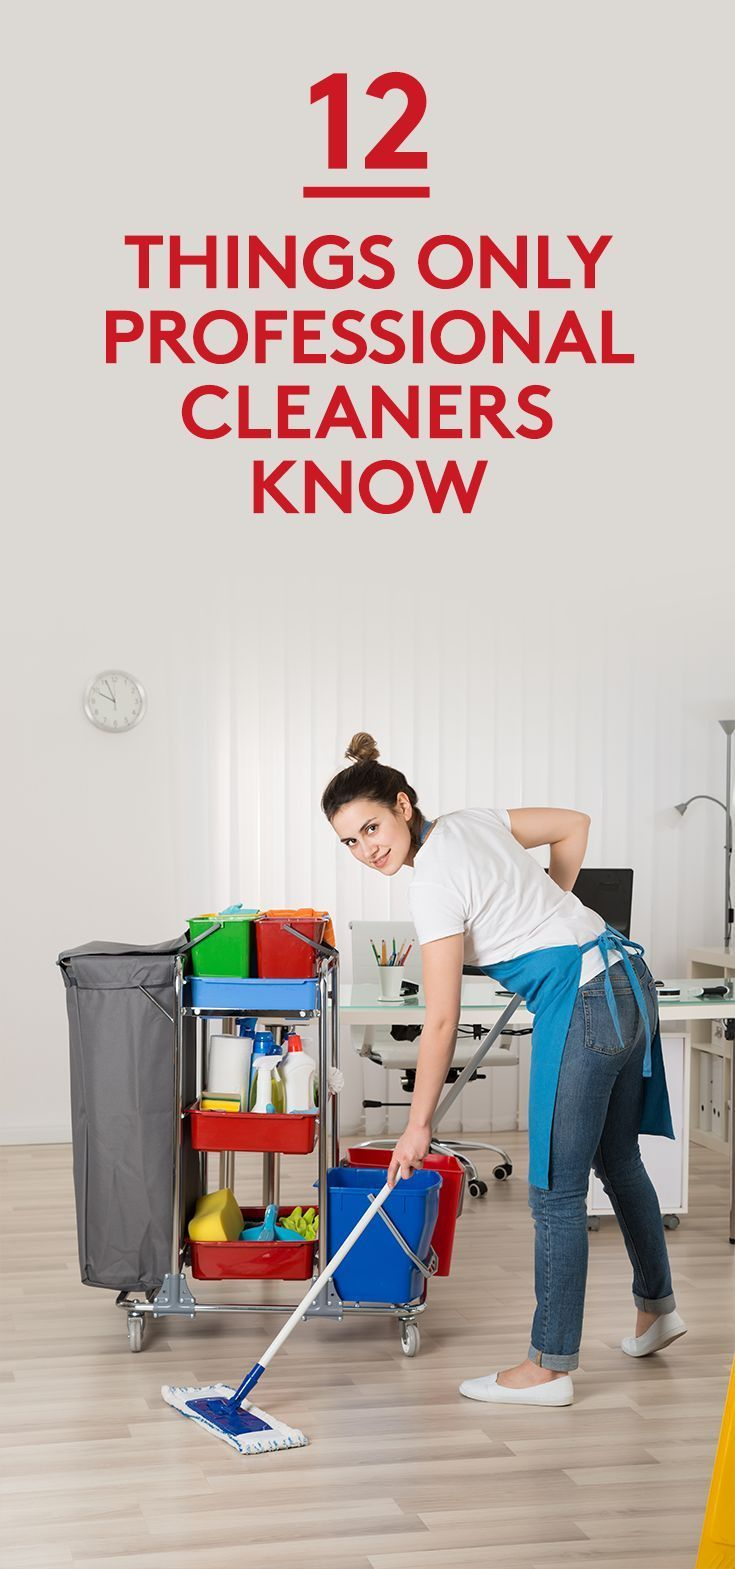 Simple rules for quick and efficient bathroom cleaning